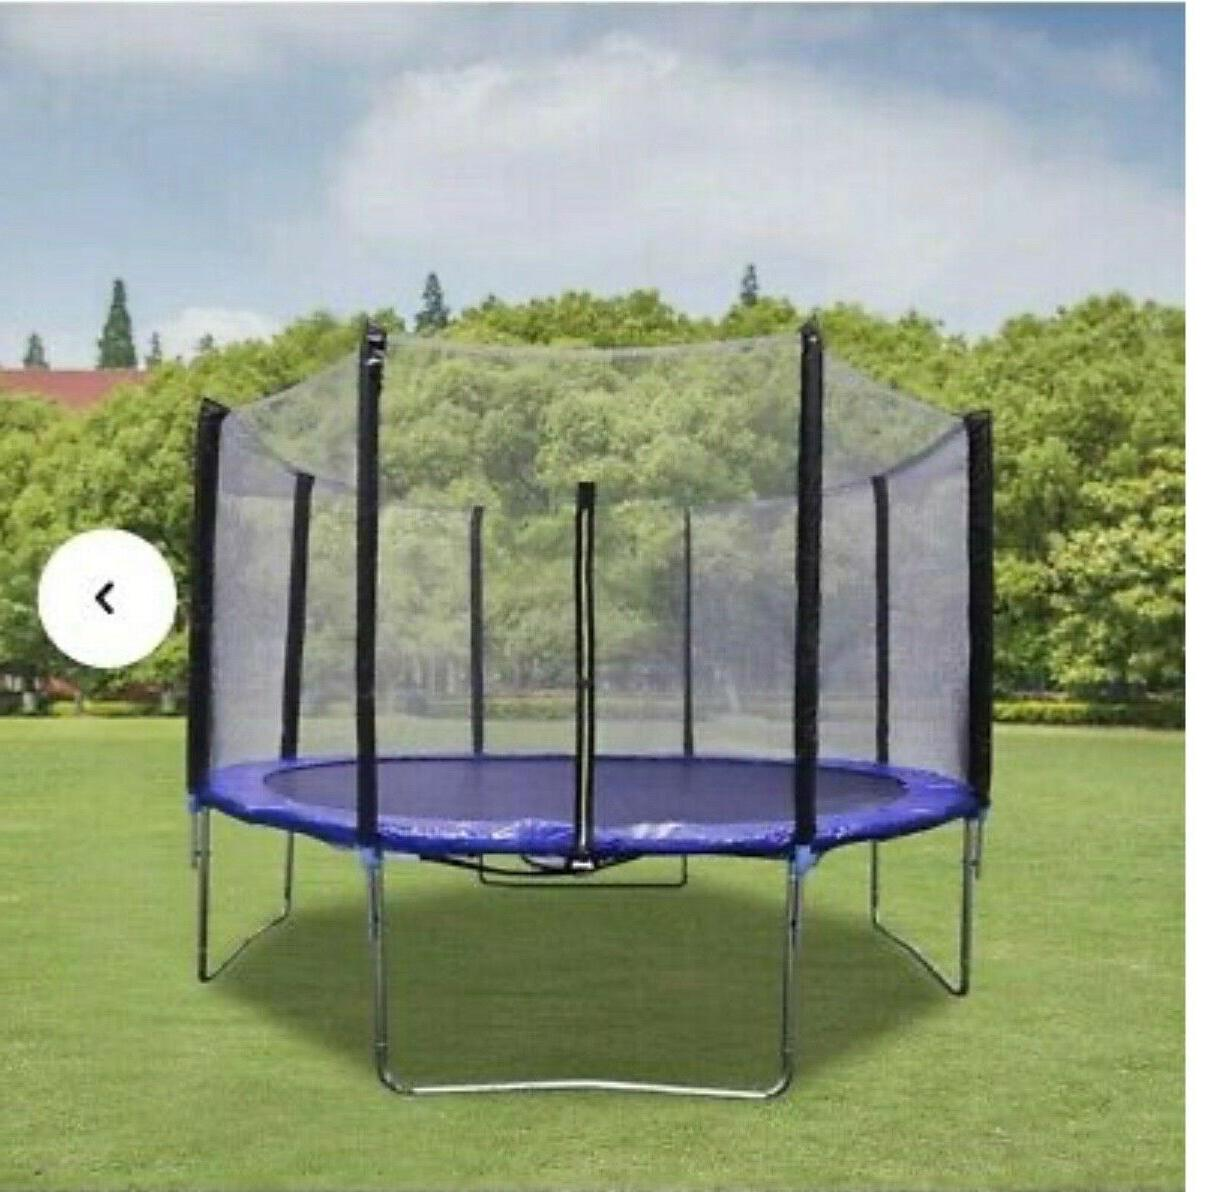 10 3 ft round with safety enclosure